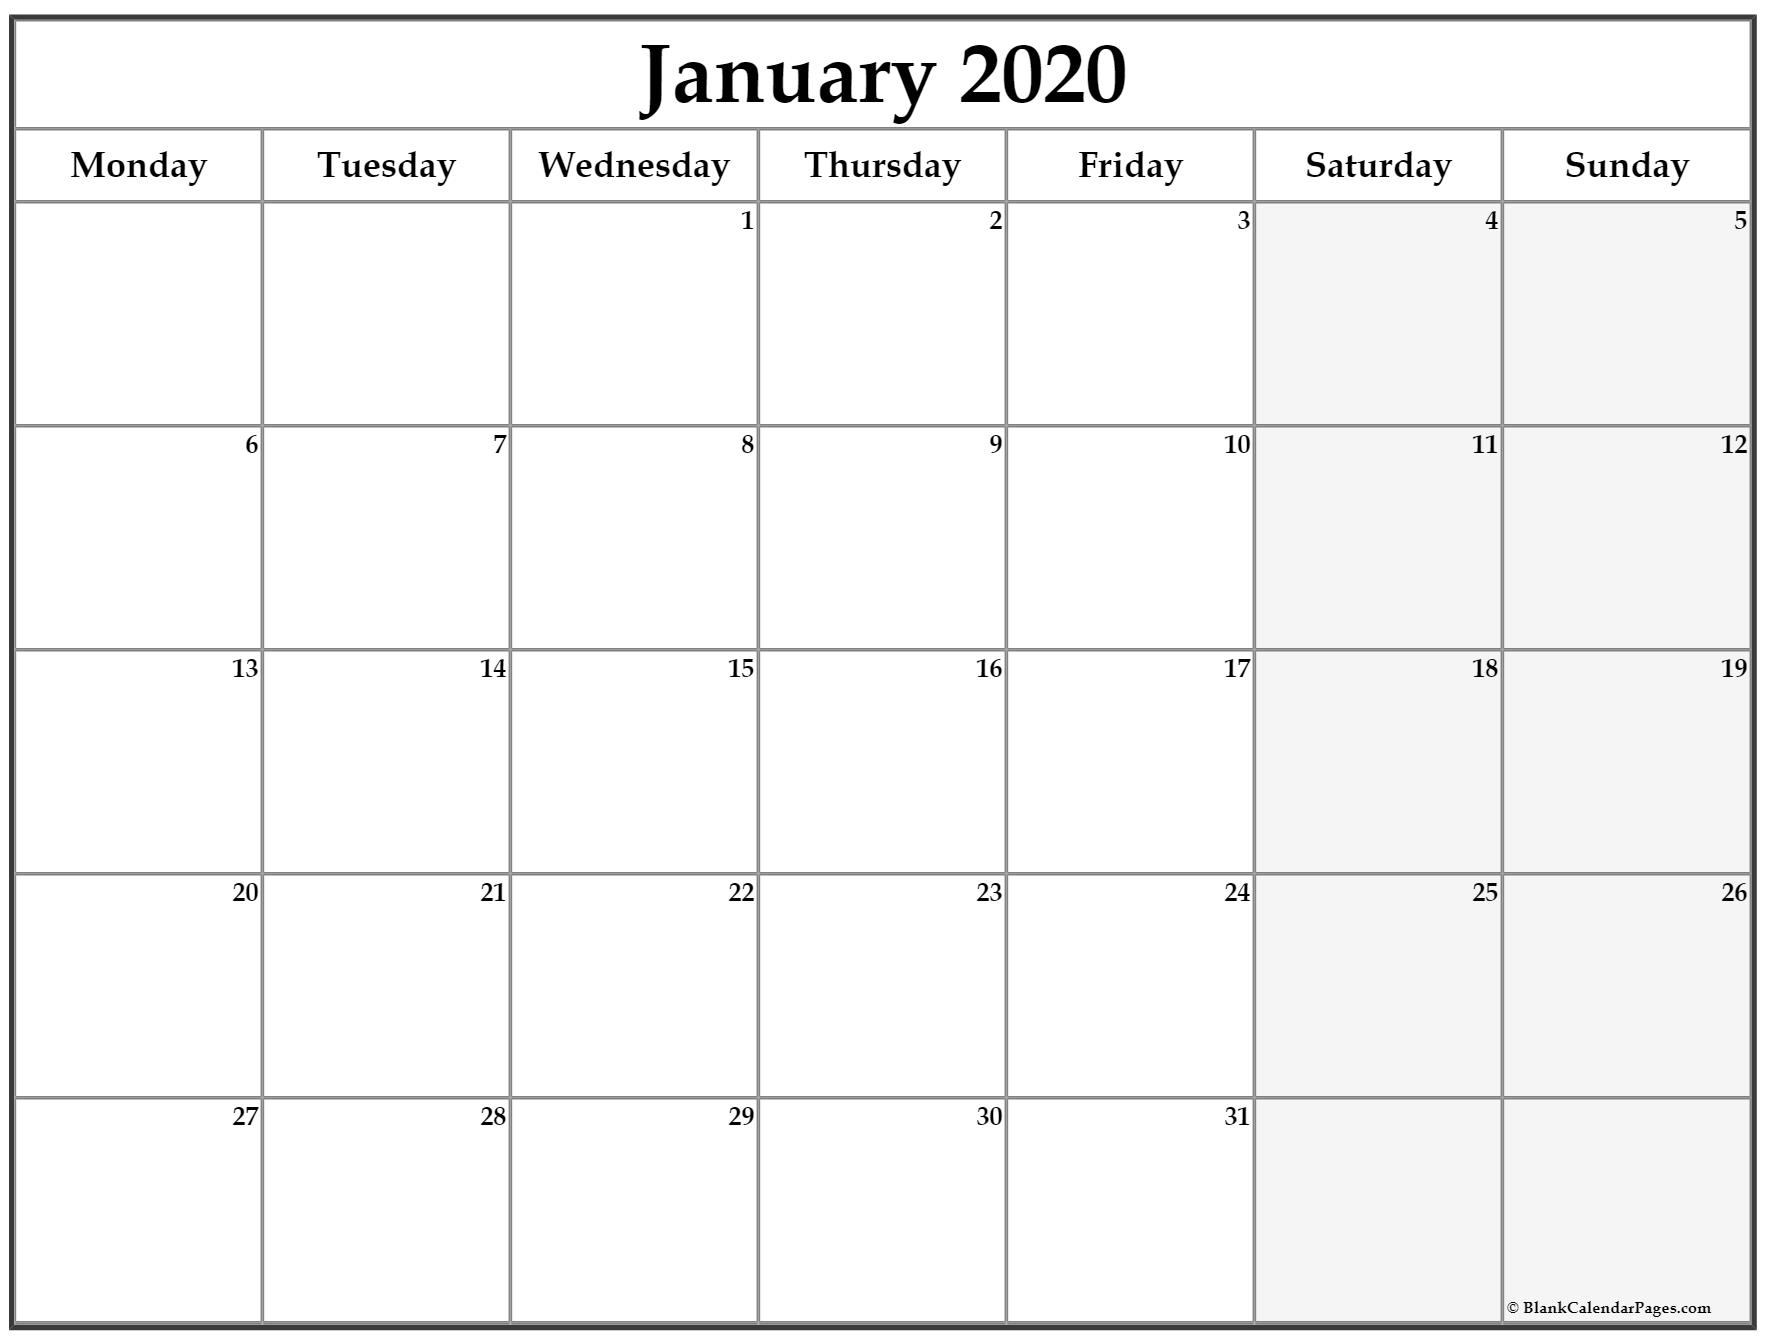 January 2020 Monday Calendar | Monday To Sunday within Monday Thru Friday Calendar